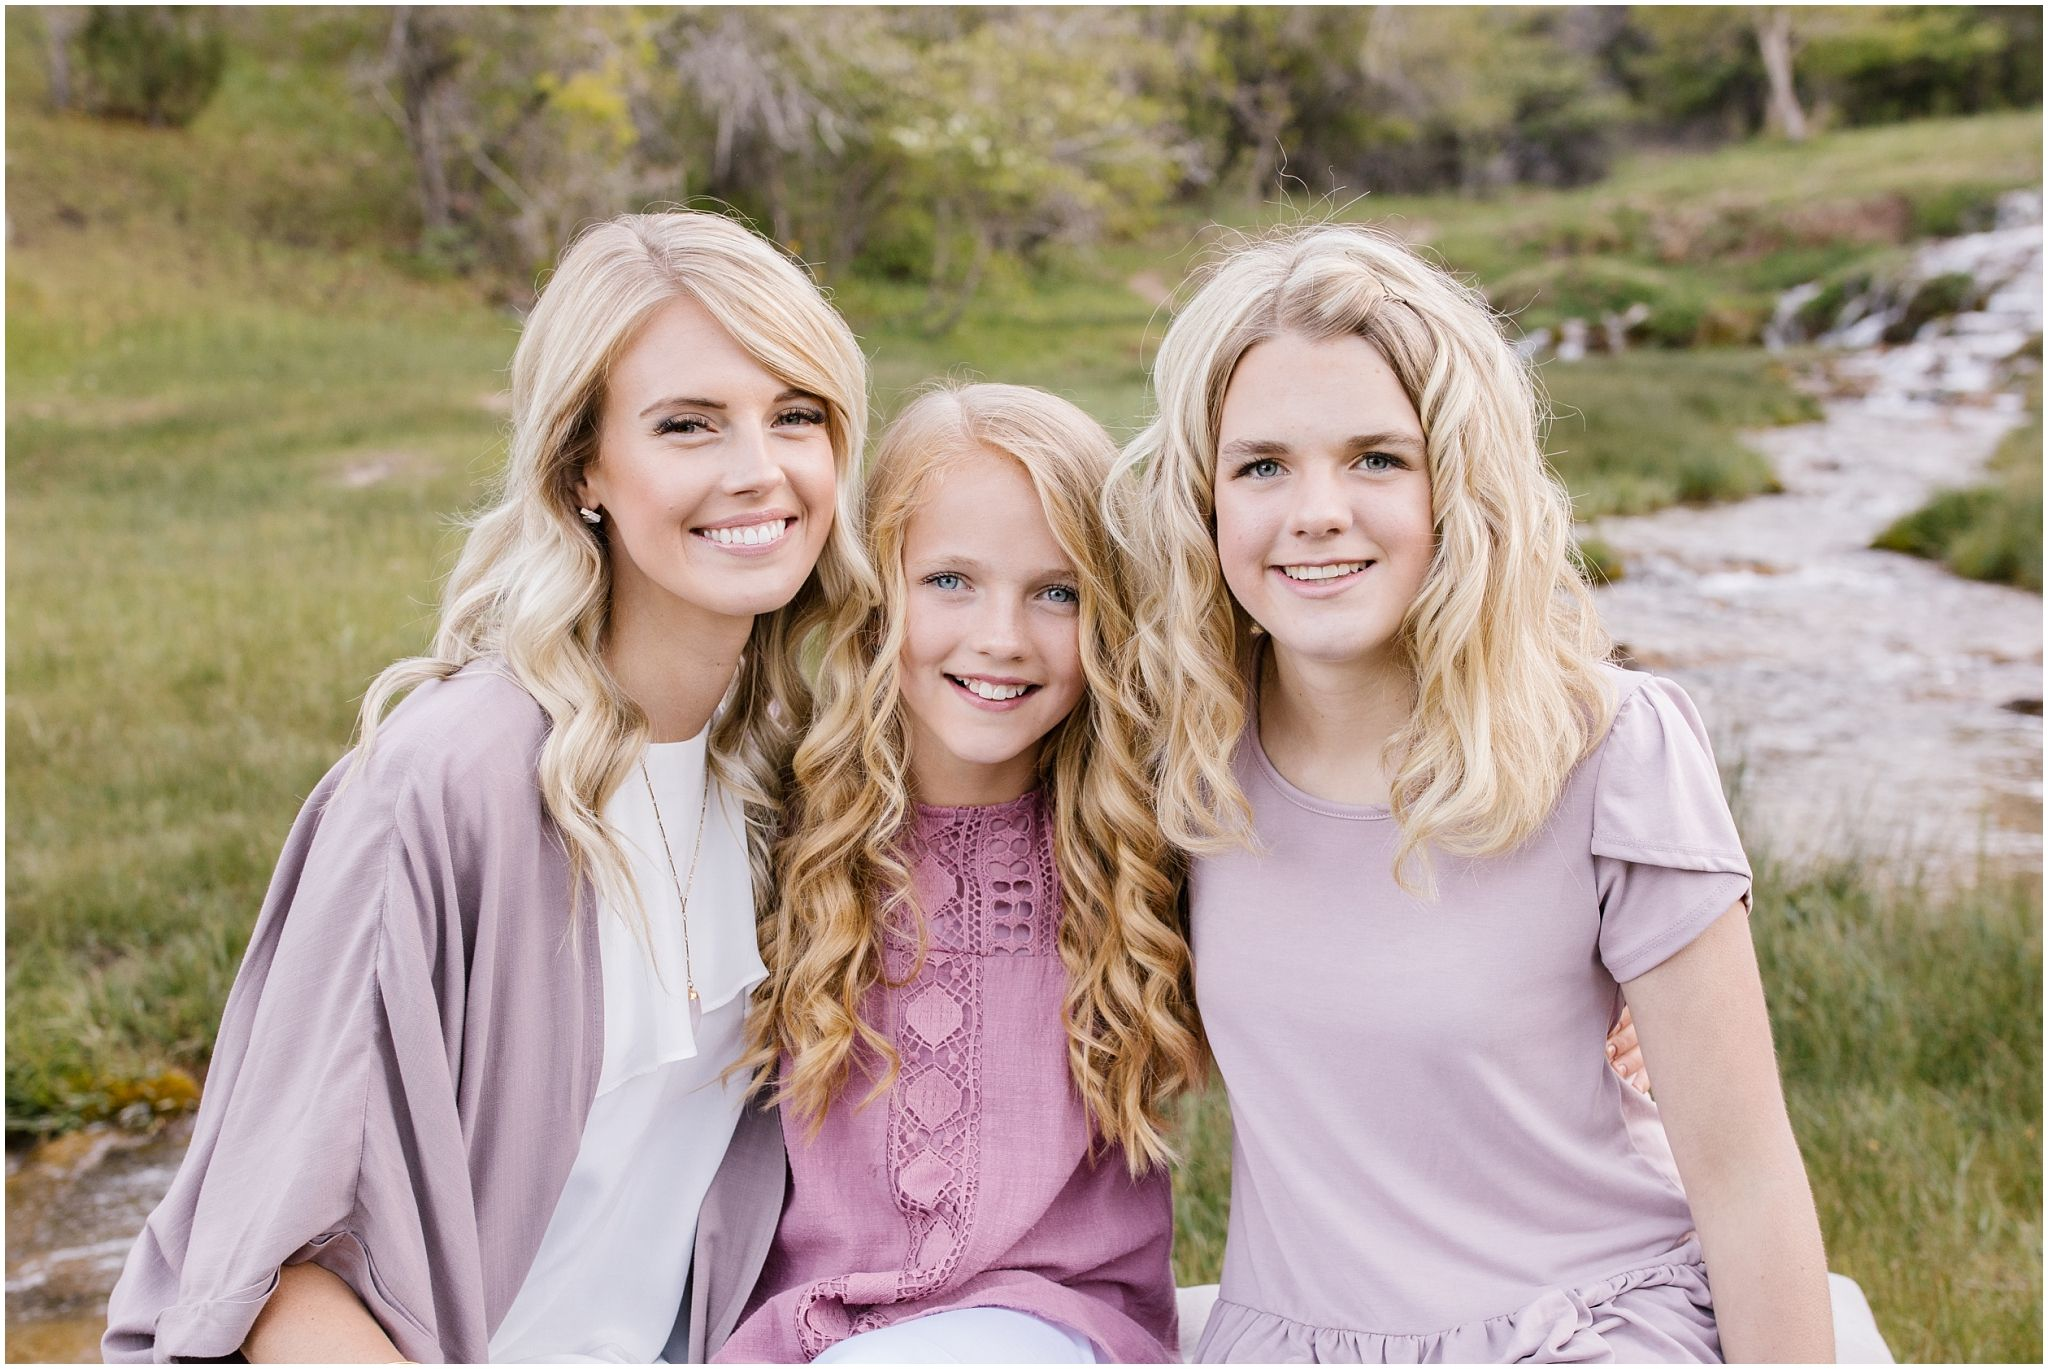 Extended Family Photography by Lizzie B Imagery. Utah based photographer. Contact us to schedule your family session! #extendedfamilyphotography